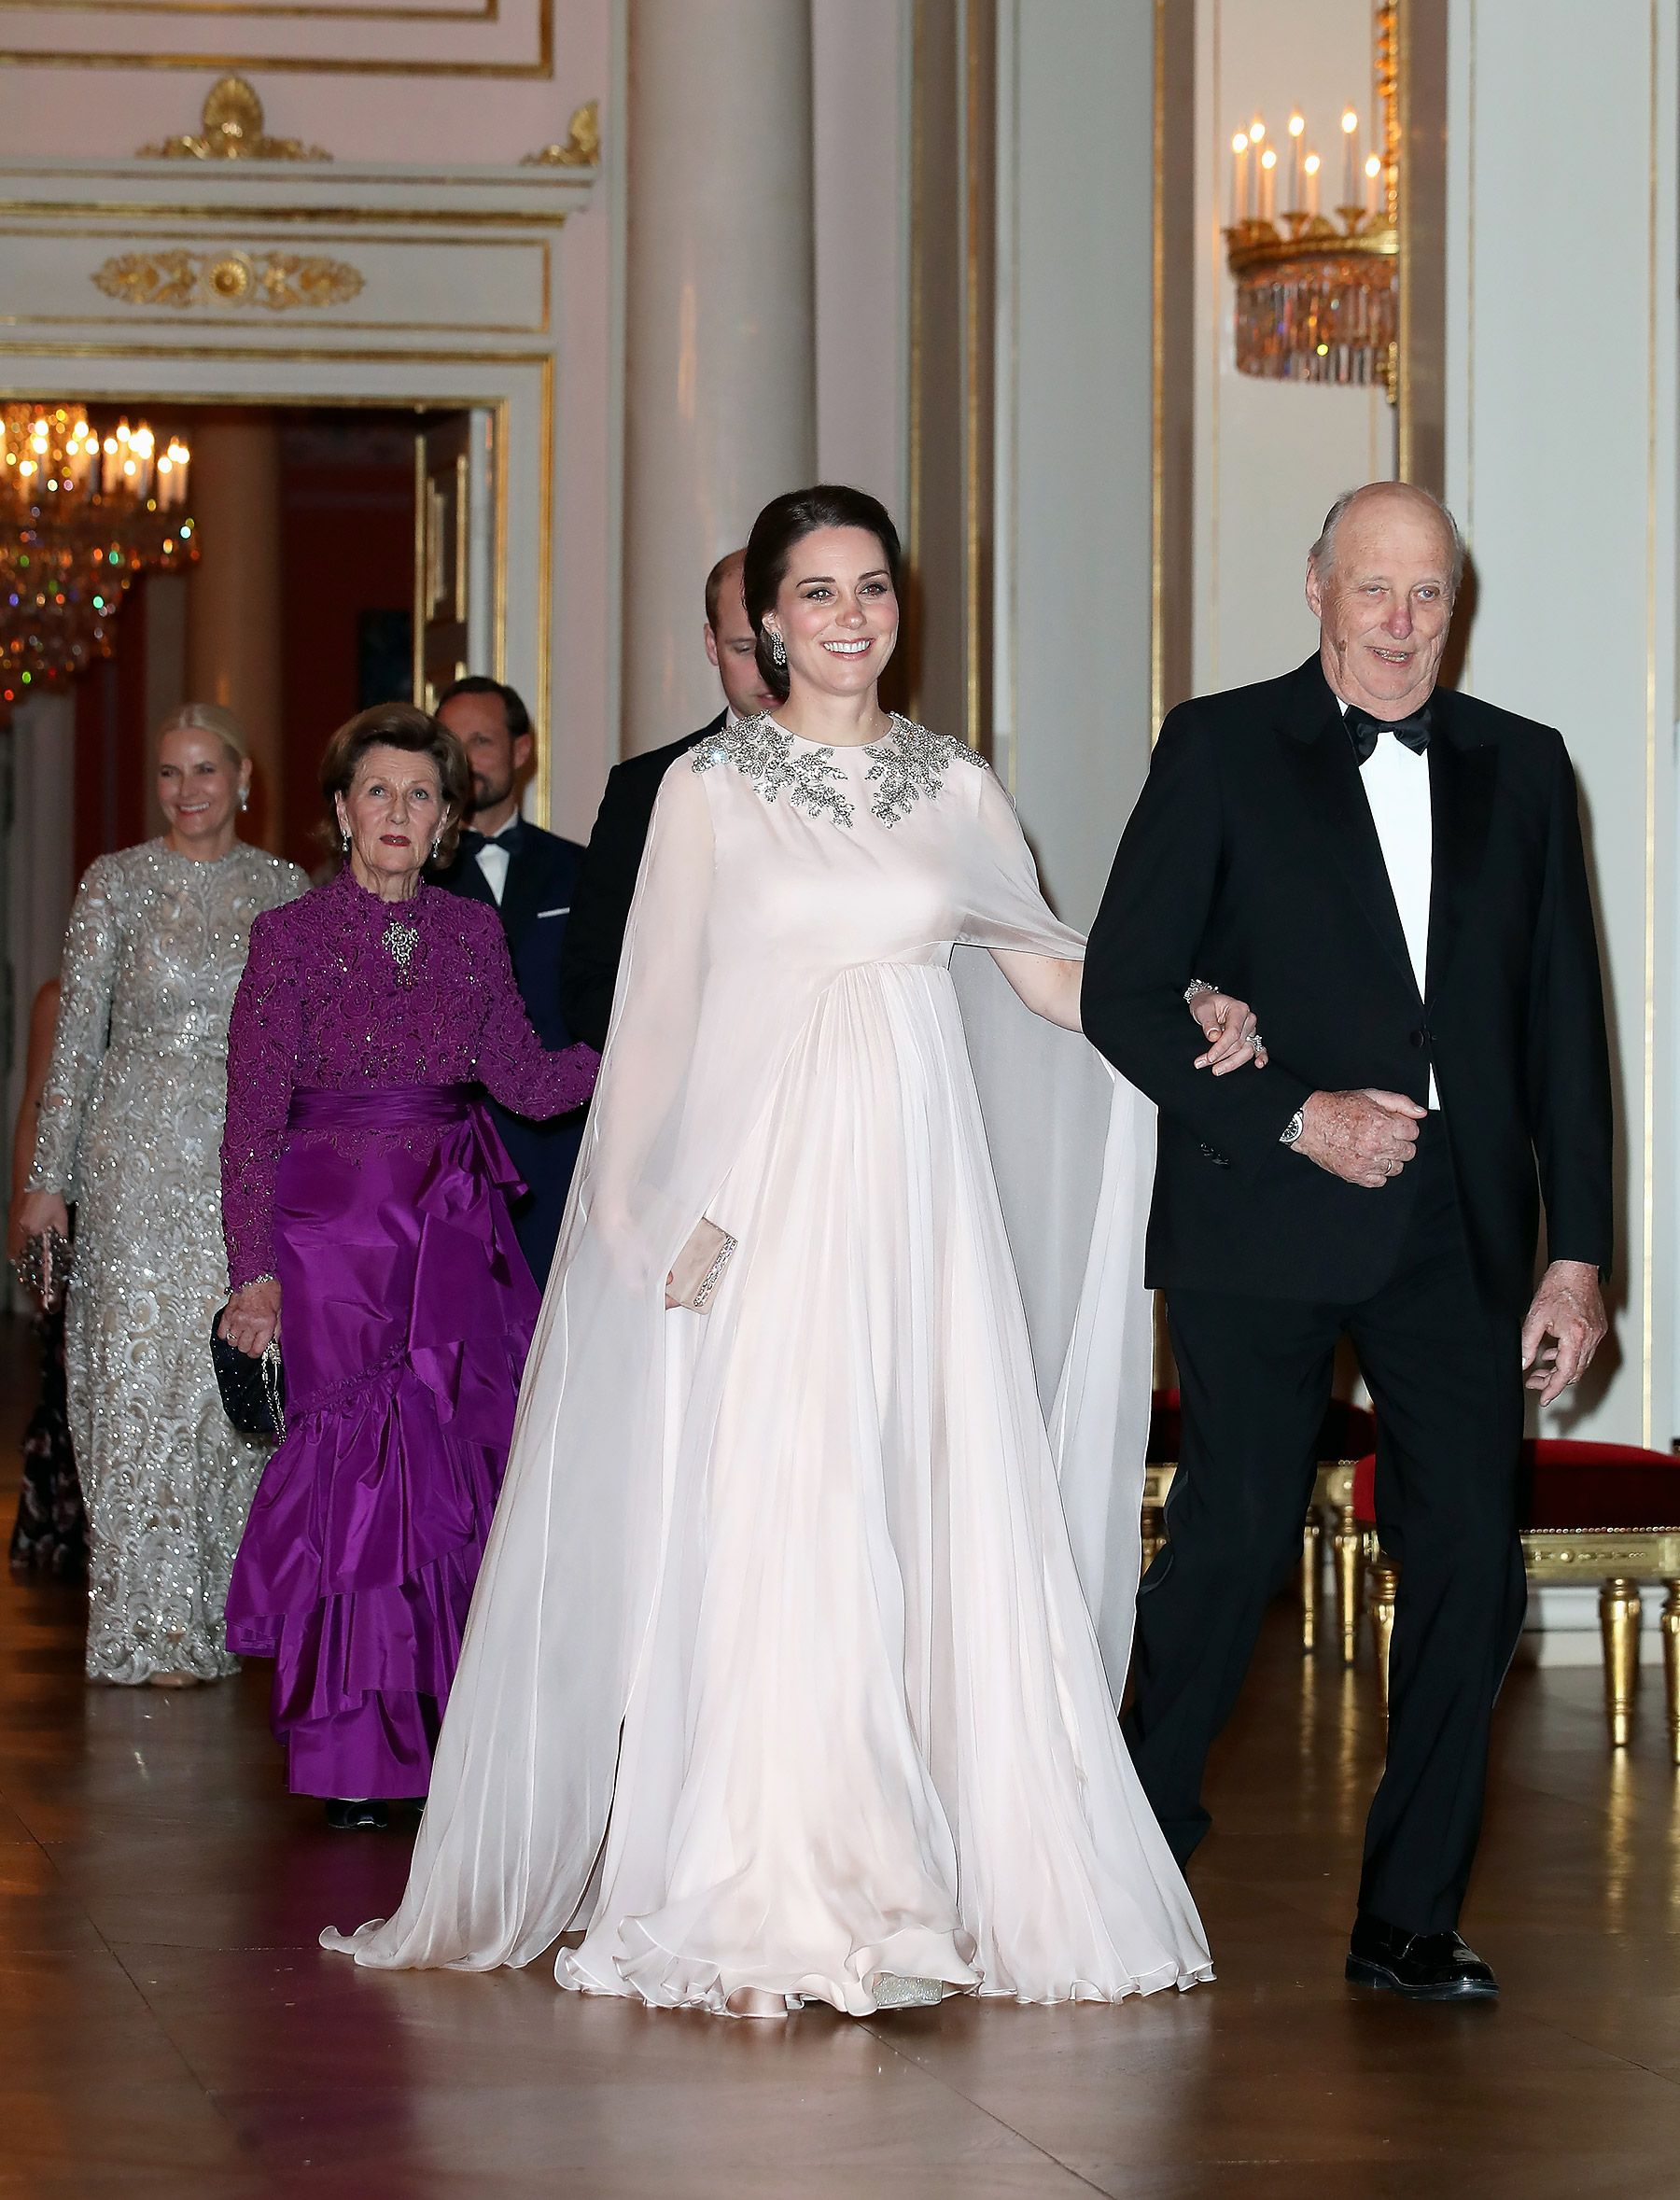 Kate Middleton Is a Goddess in Ethereal Blush Gown From Her Wedding ...